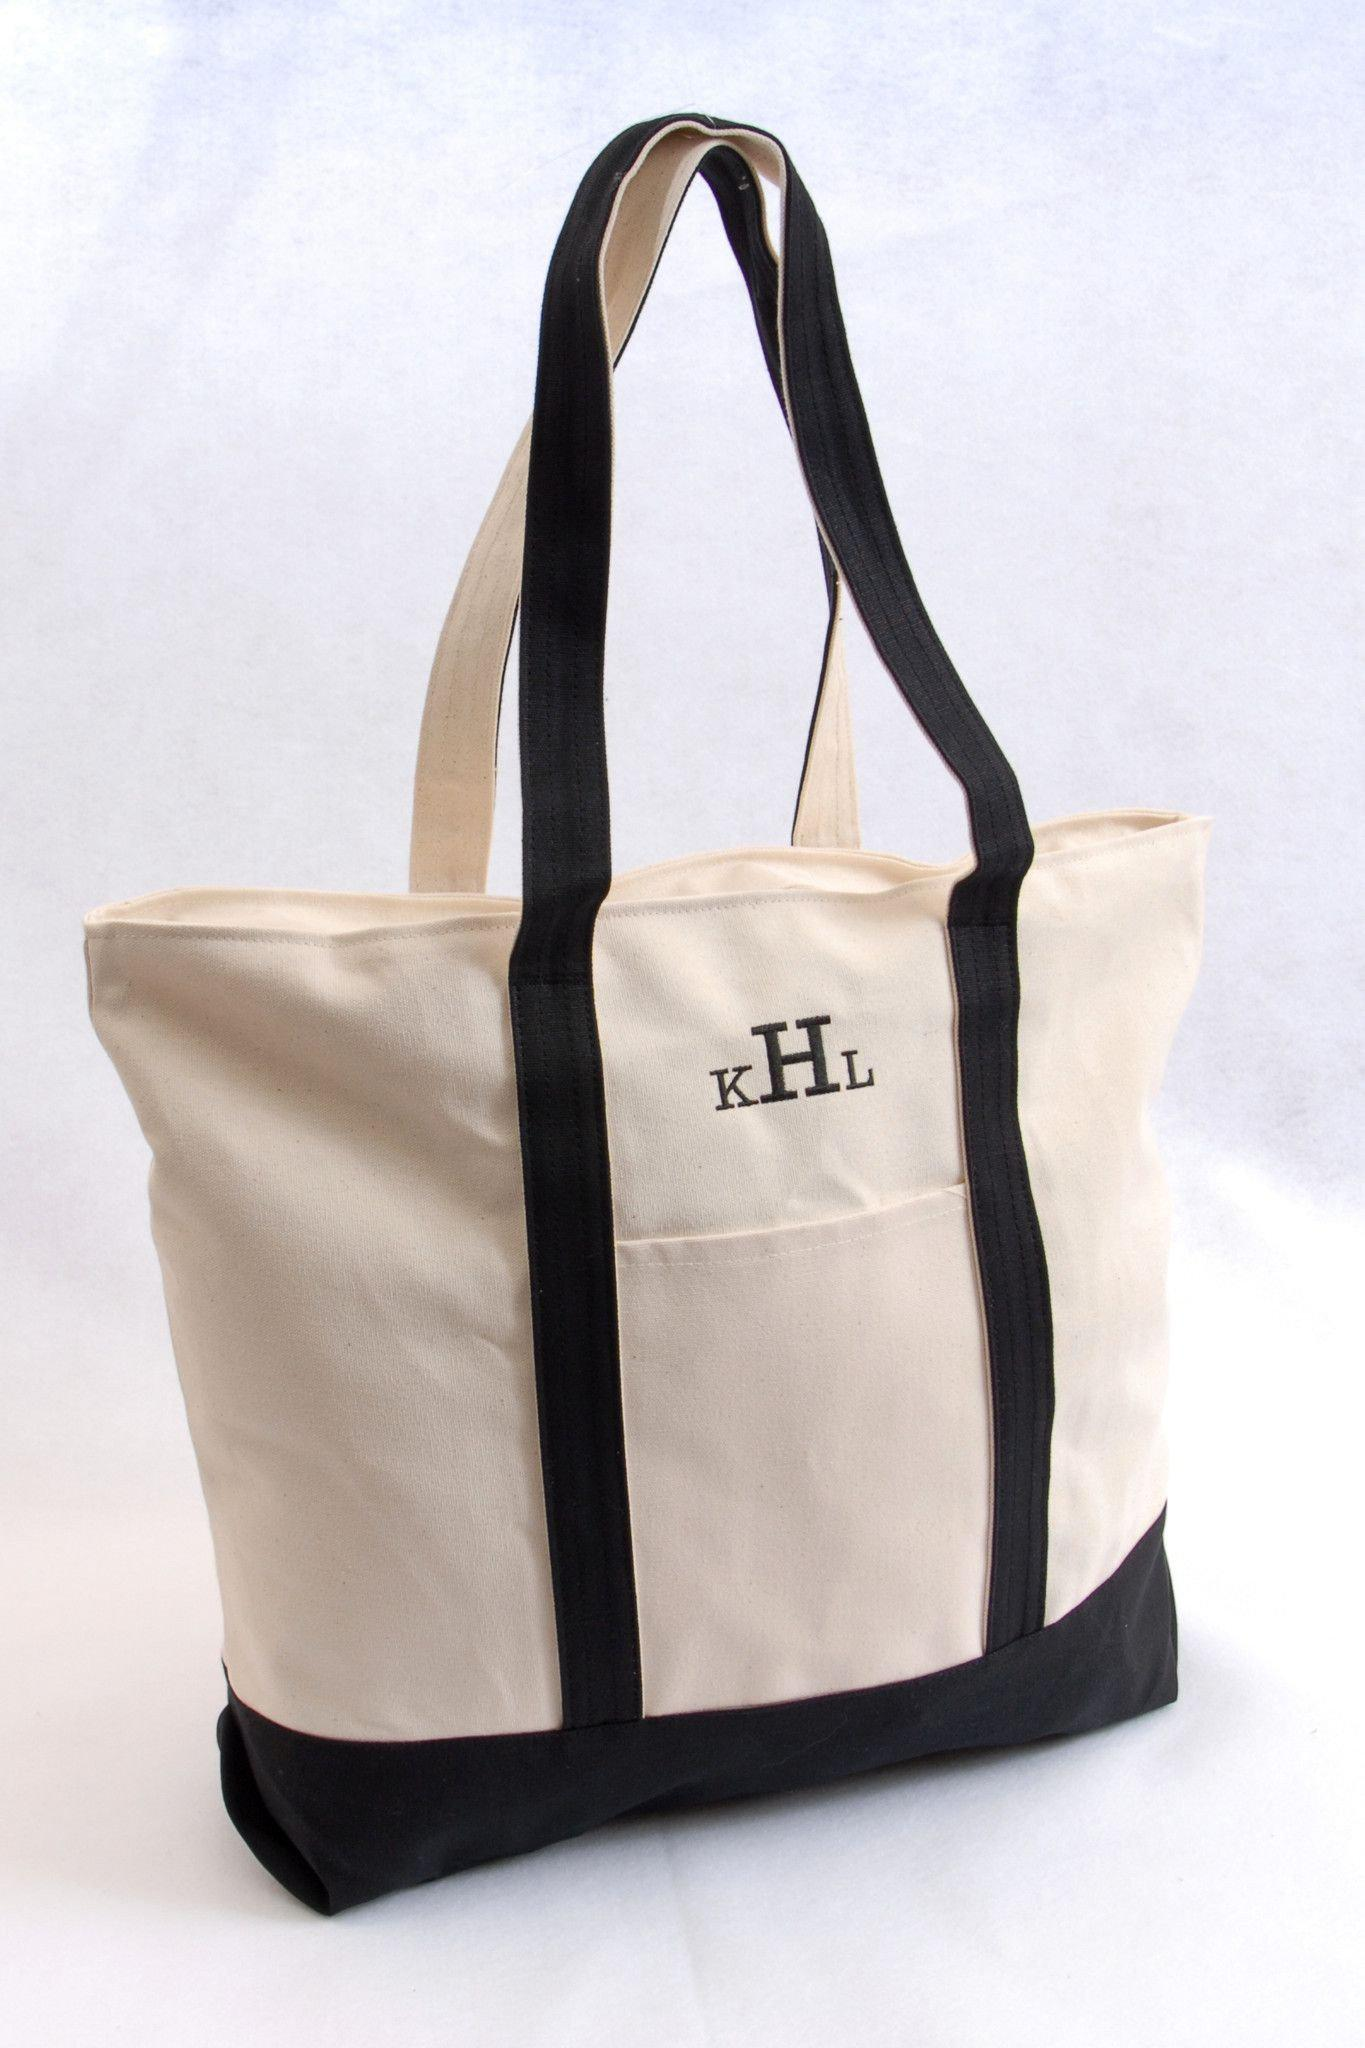 Personalized Tote Bags - Beach Bag